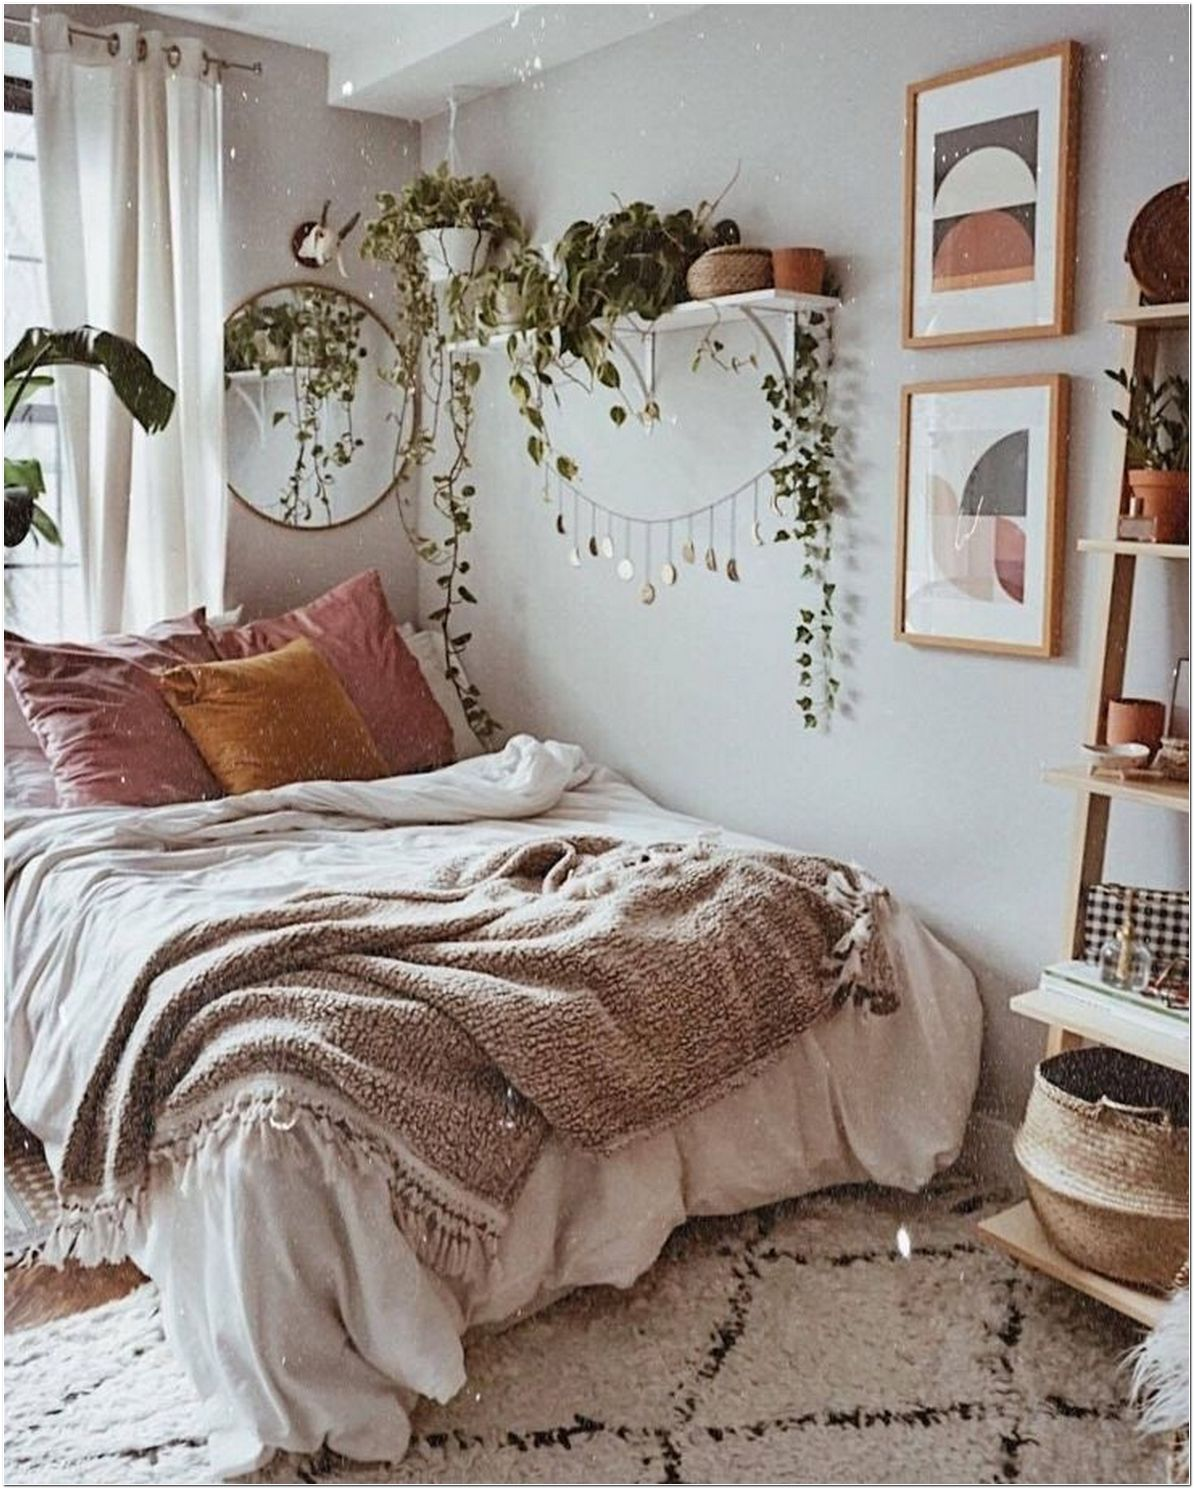 87+ White Bedroom Ideas For Your Room